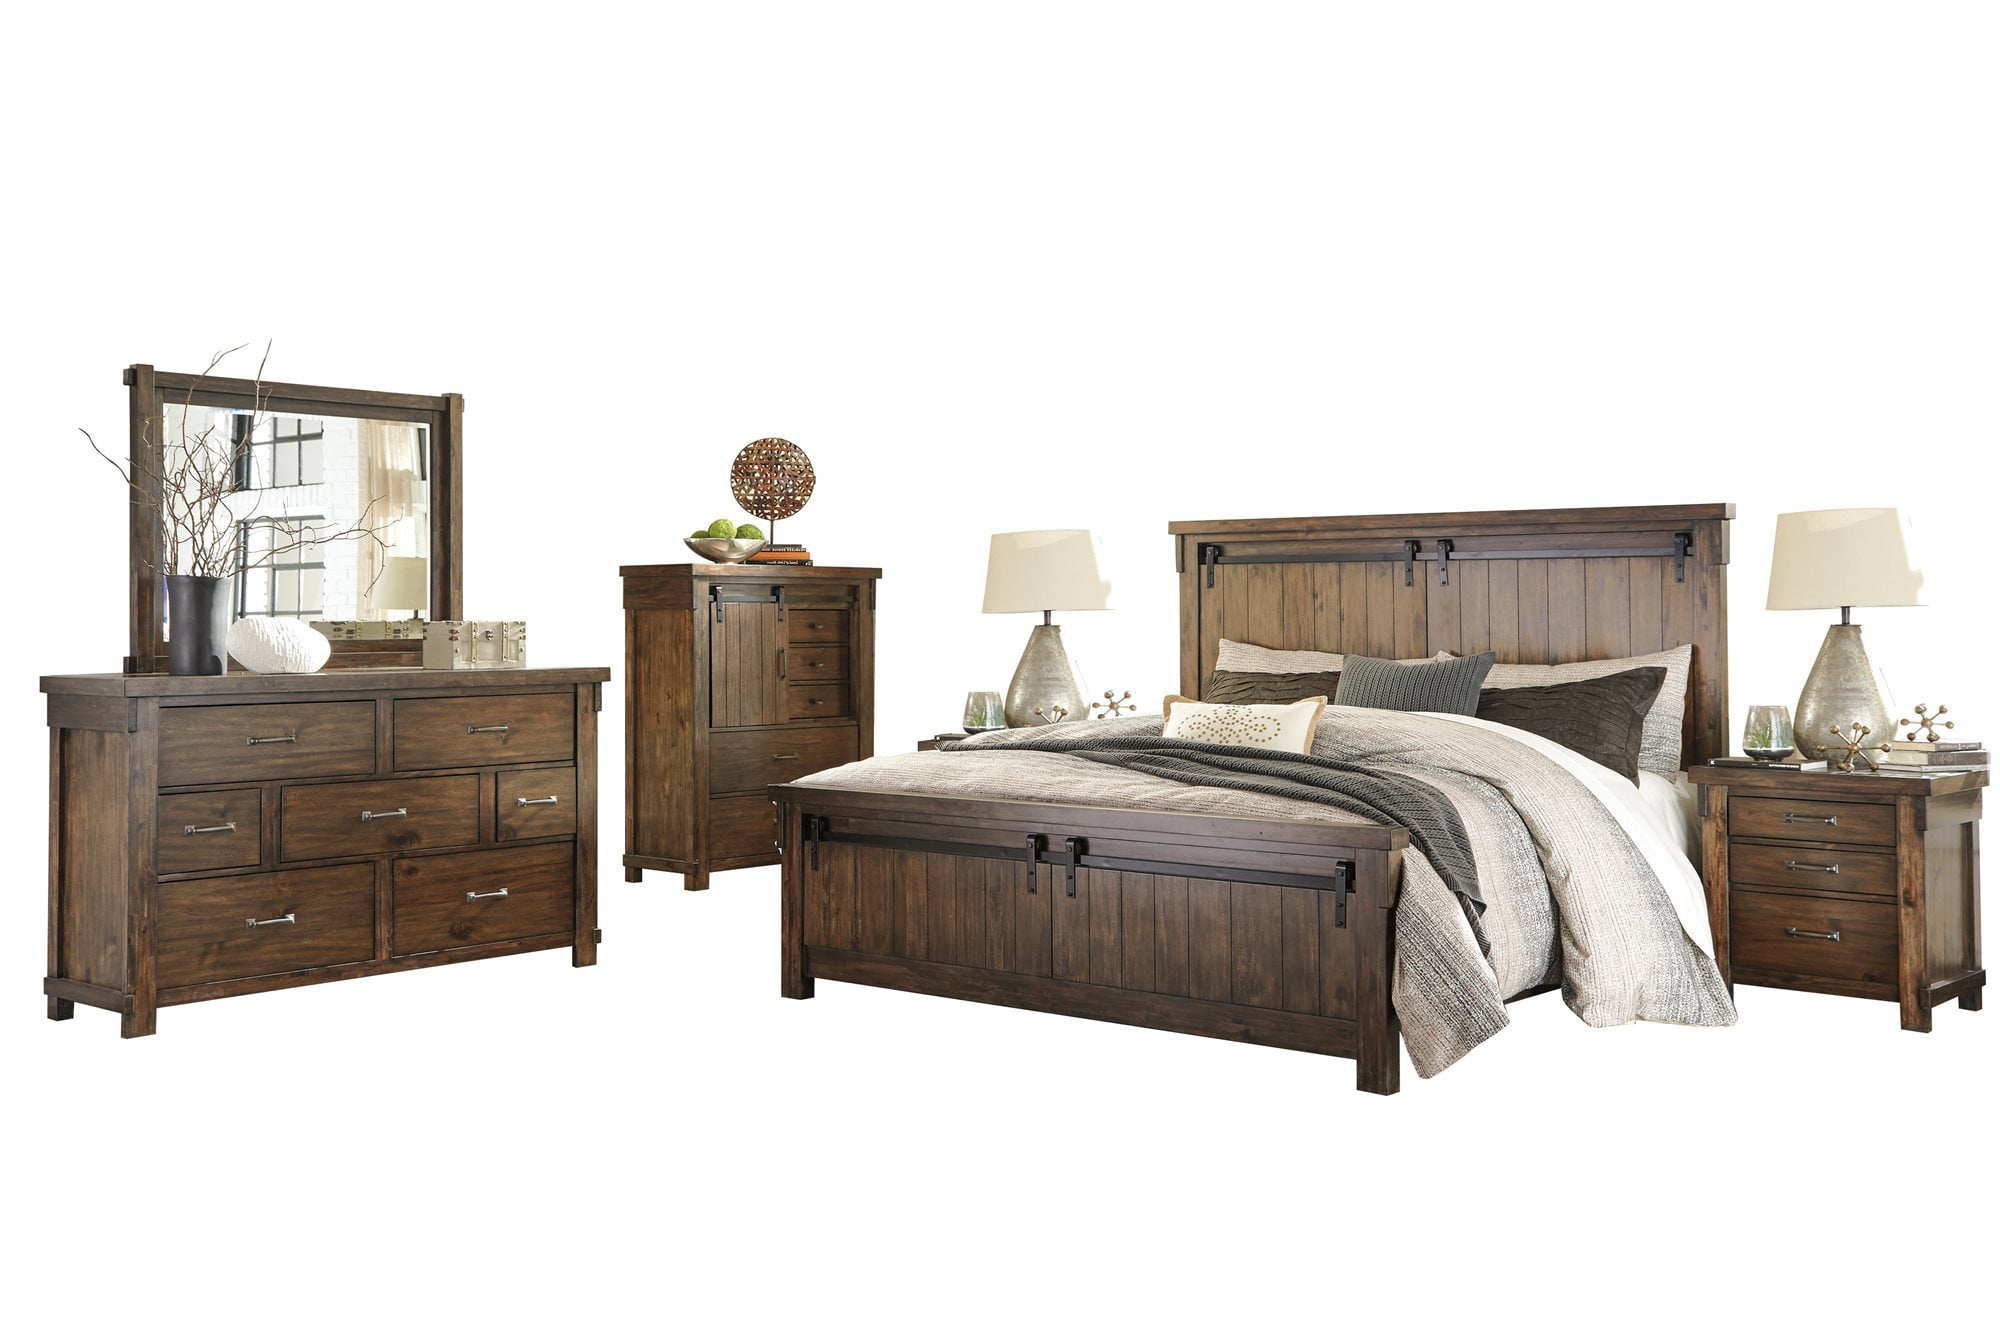 Ashley Furniture Lakeleigh 6 Pc Bedroom Set Cal King Panel Bed